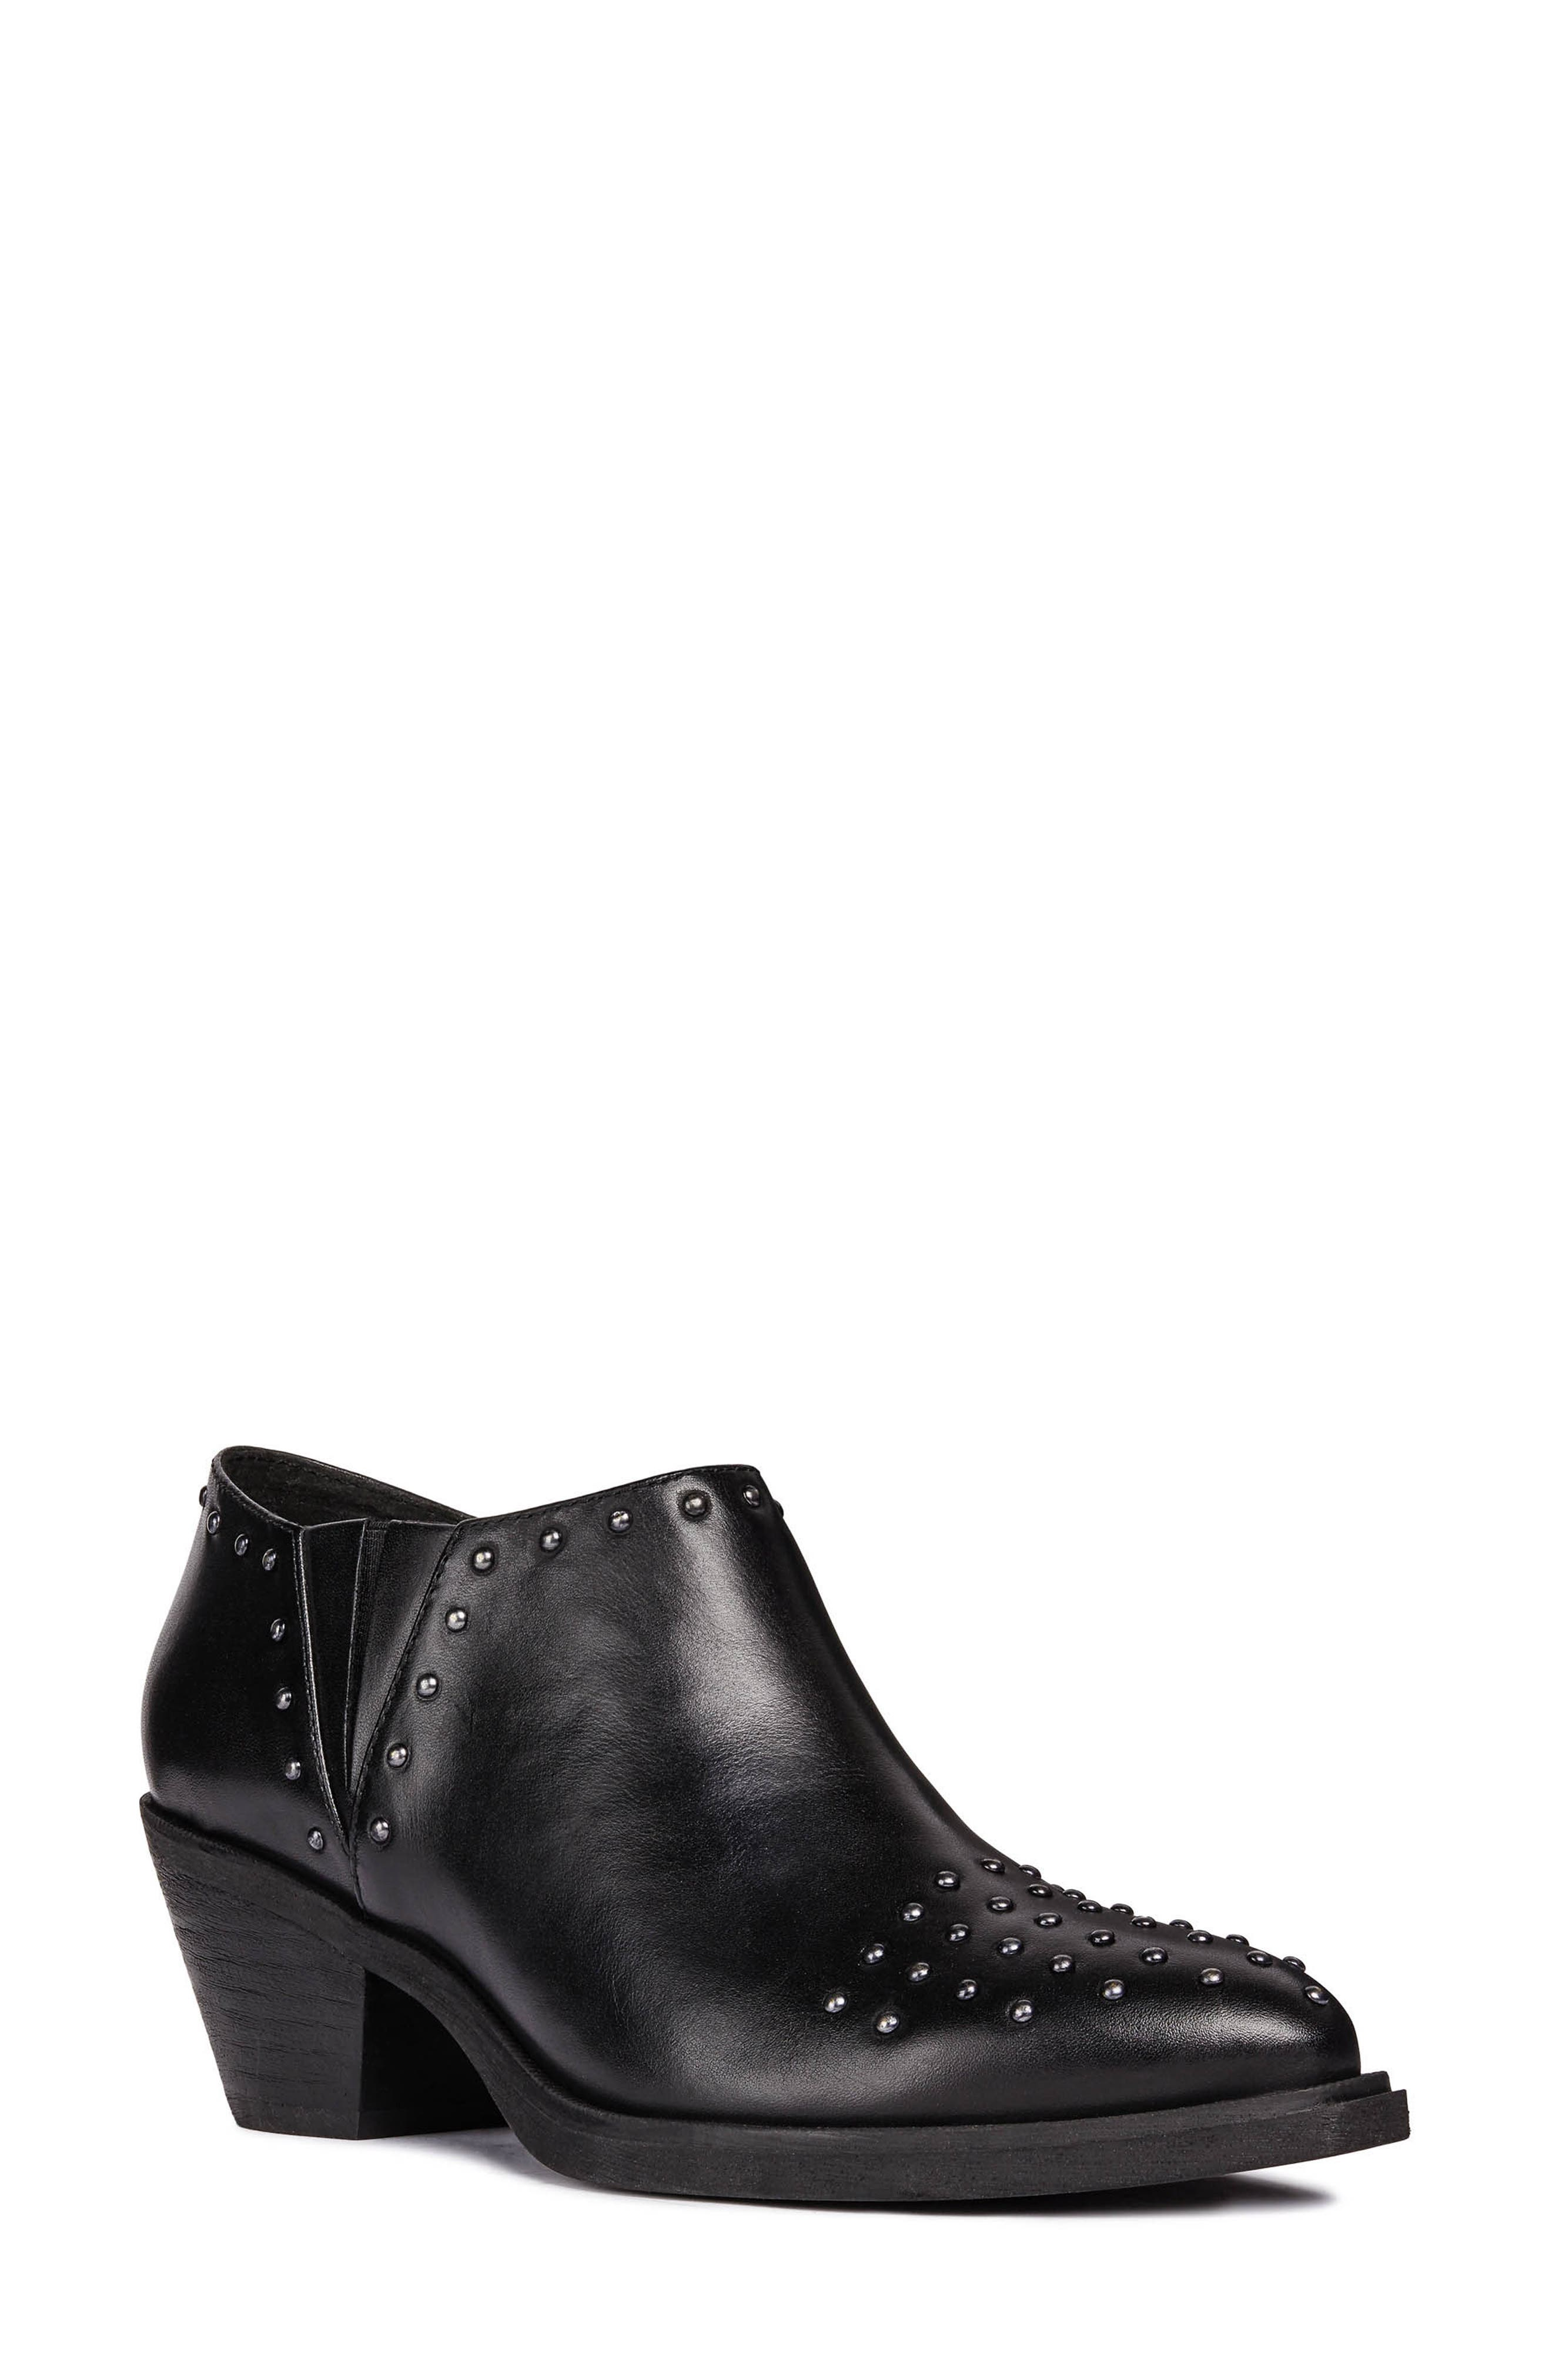 Geox Lovai Ankle Boot, Black